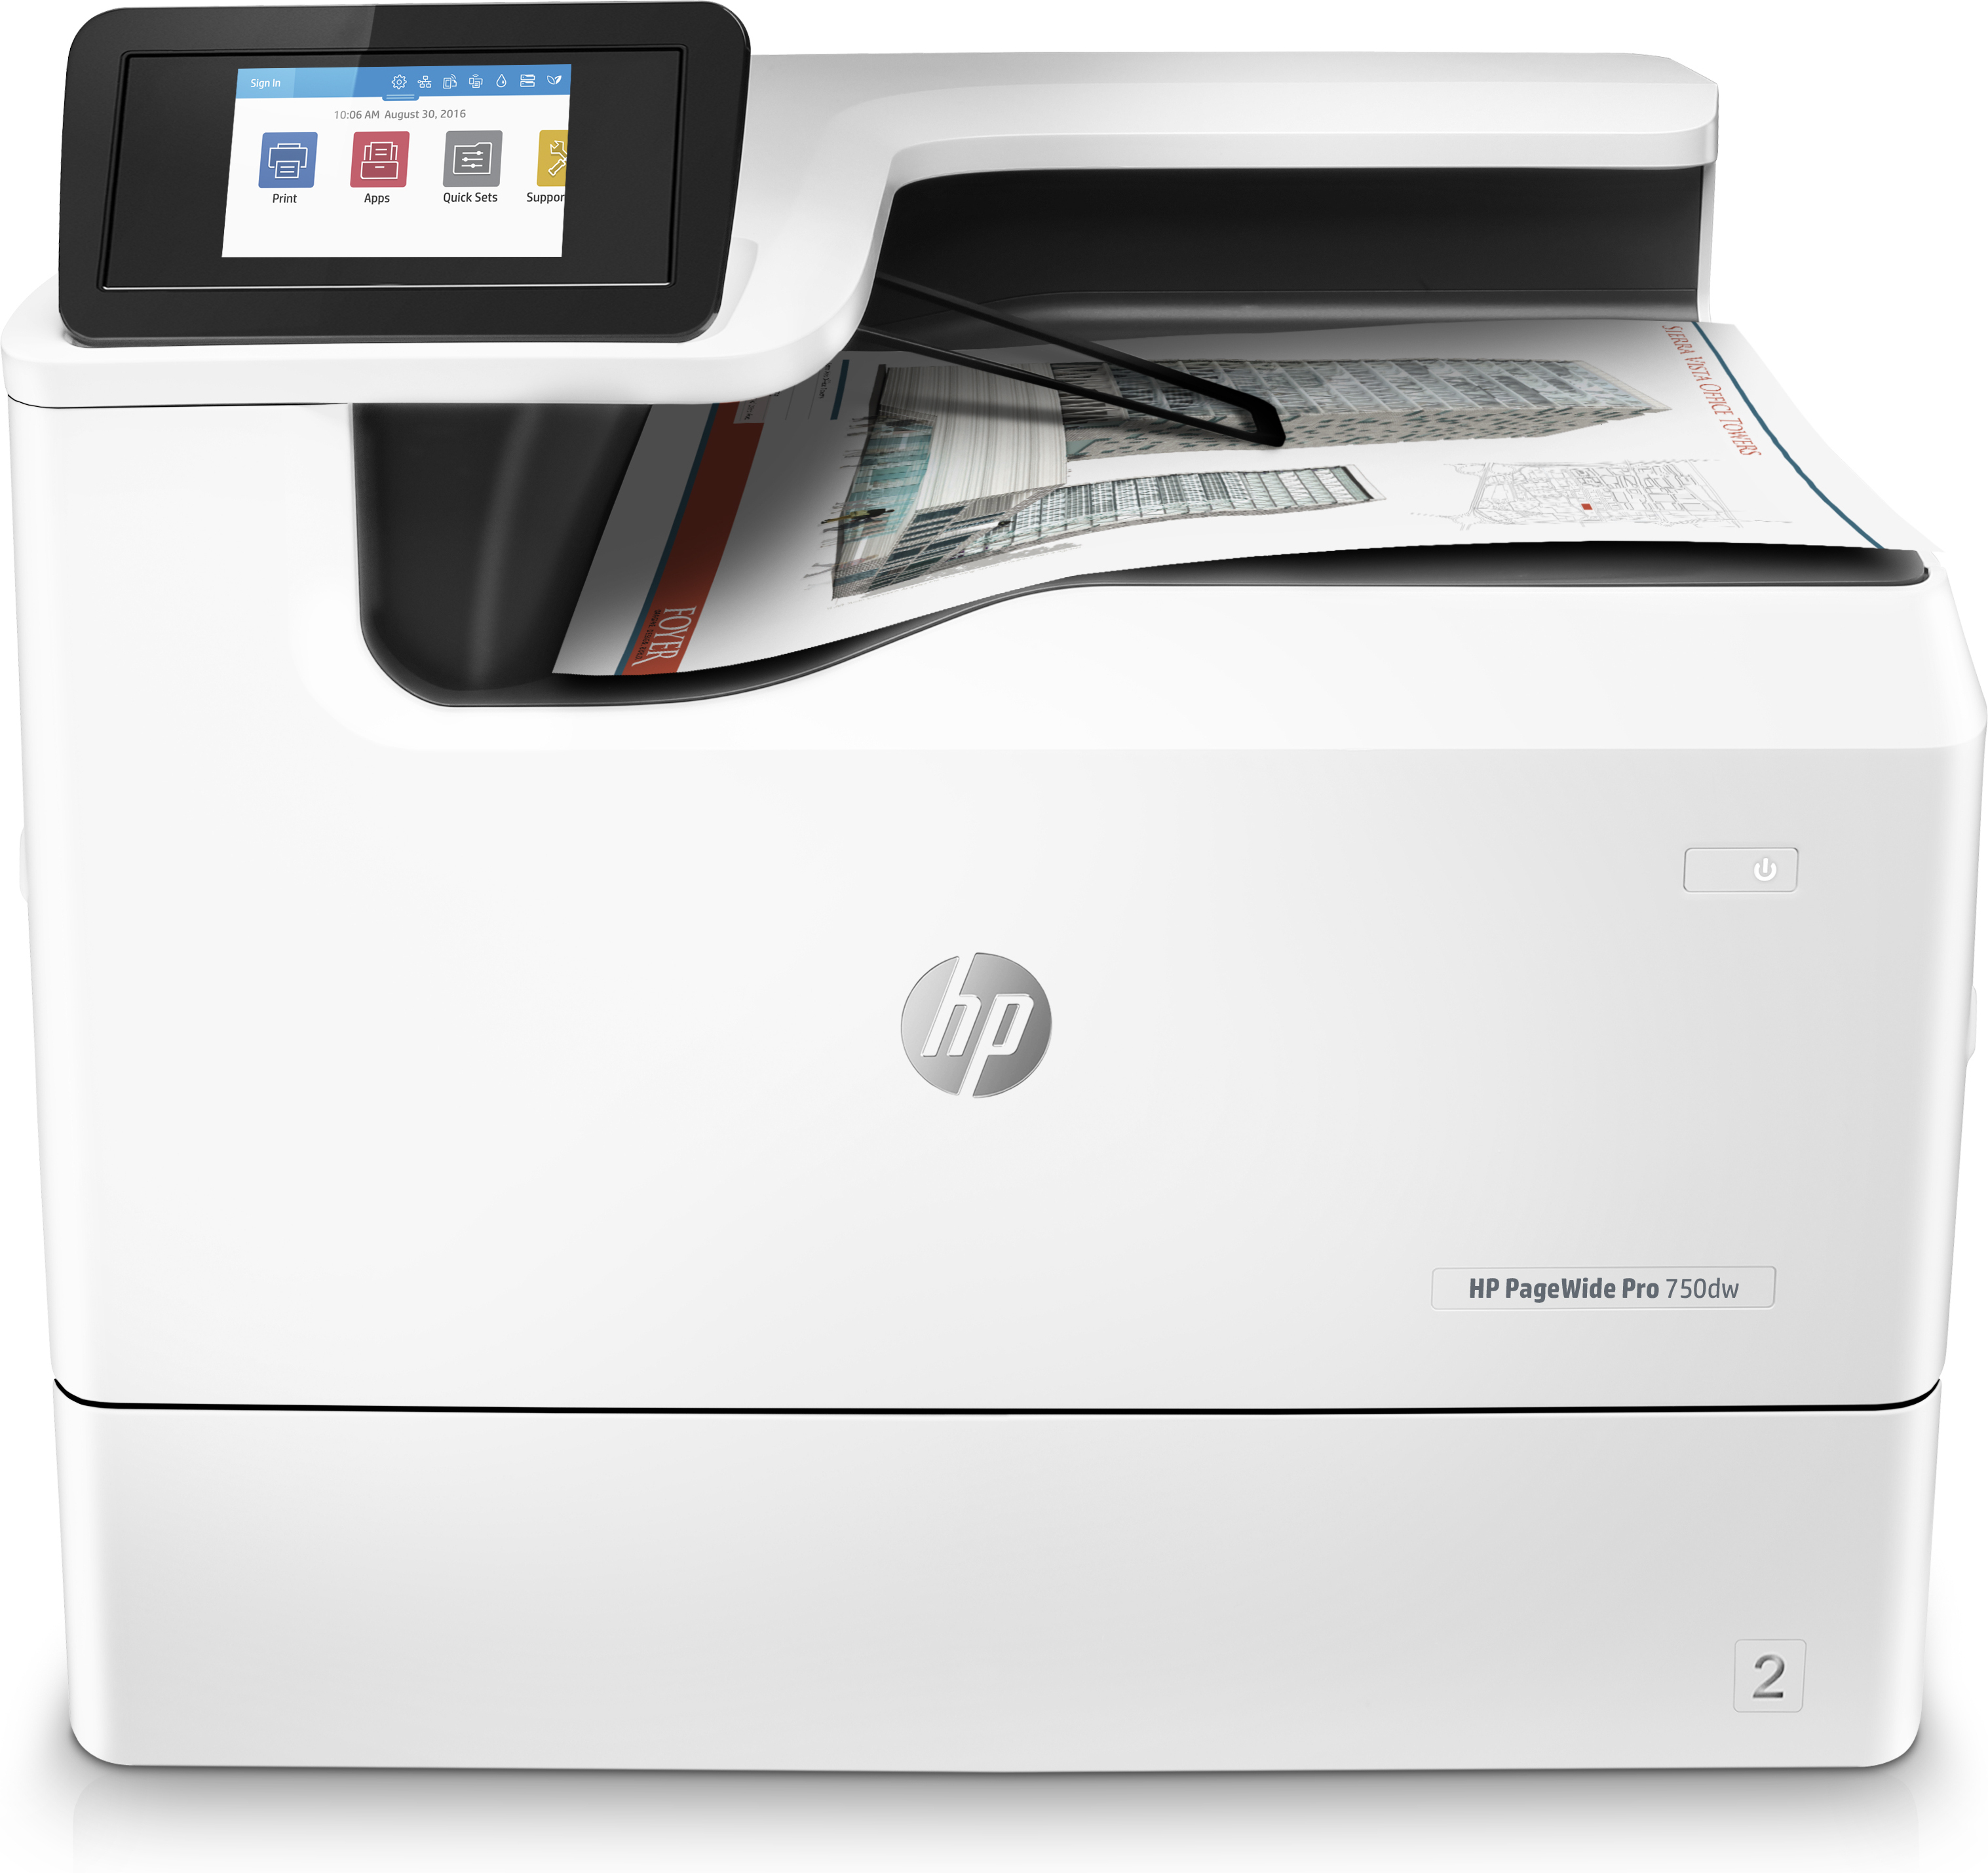 HP PageWide Pro 750dw Ink Cartridges